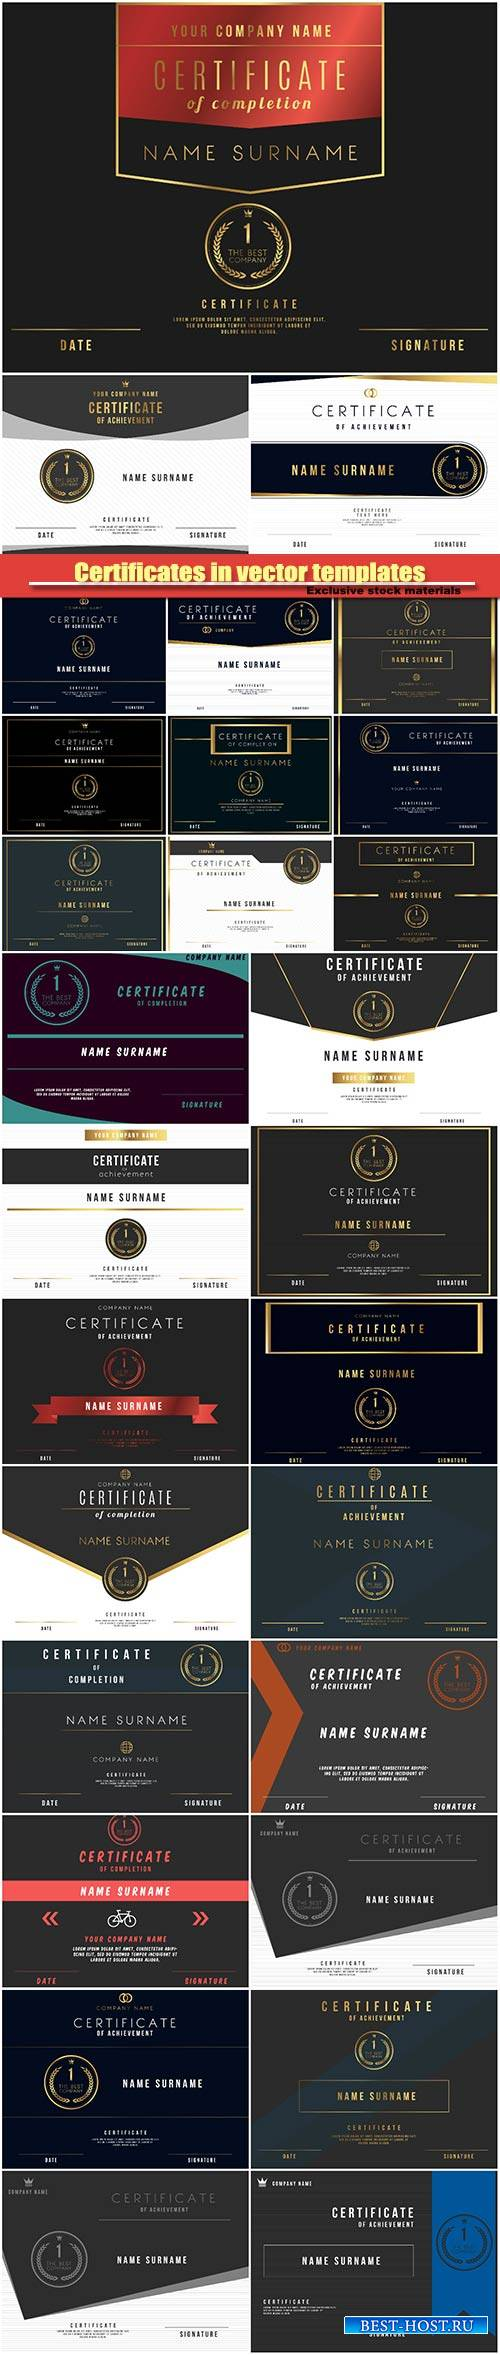 Certificates in vector templates